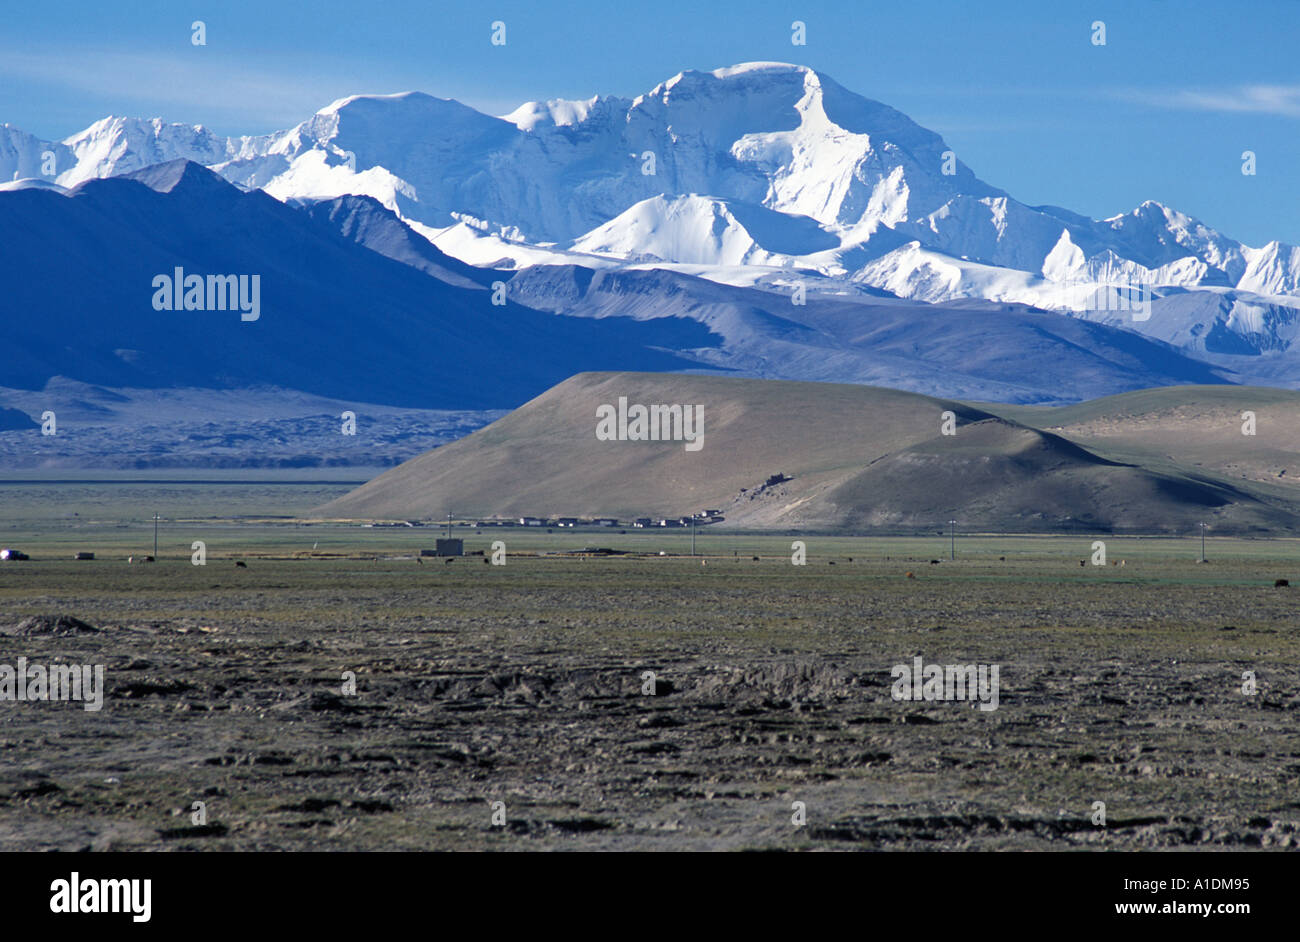 North Face of Cho Oyo 8201m Tibet Journey to an ascent of ShishaPangma Tibet Photo by Philip Mansbridge - Stock Image